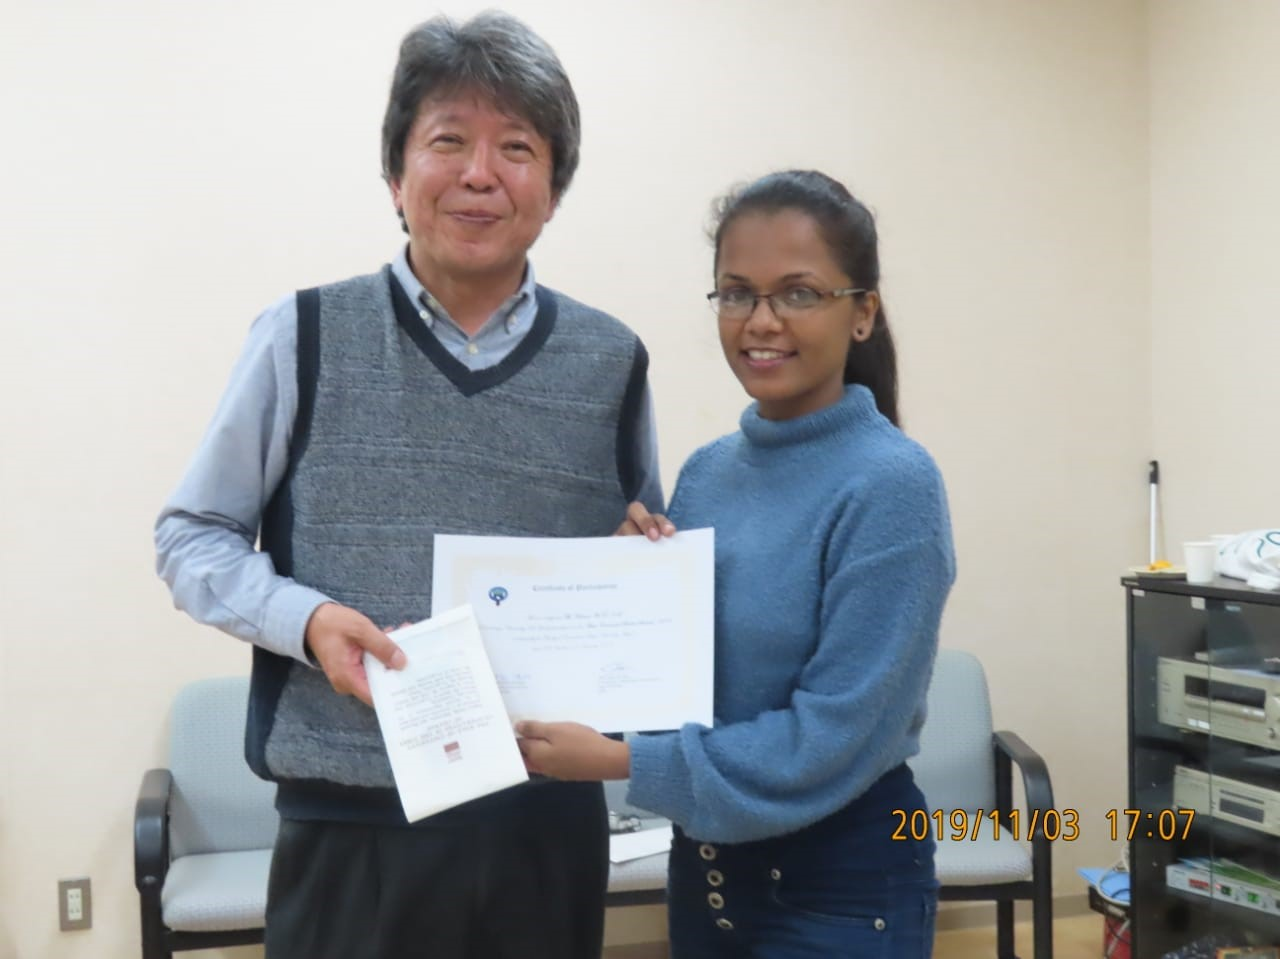 Final year student of the Department, participated in